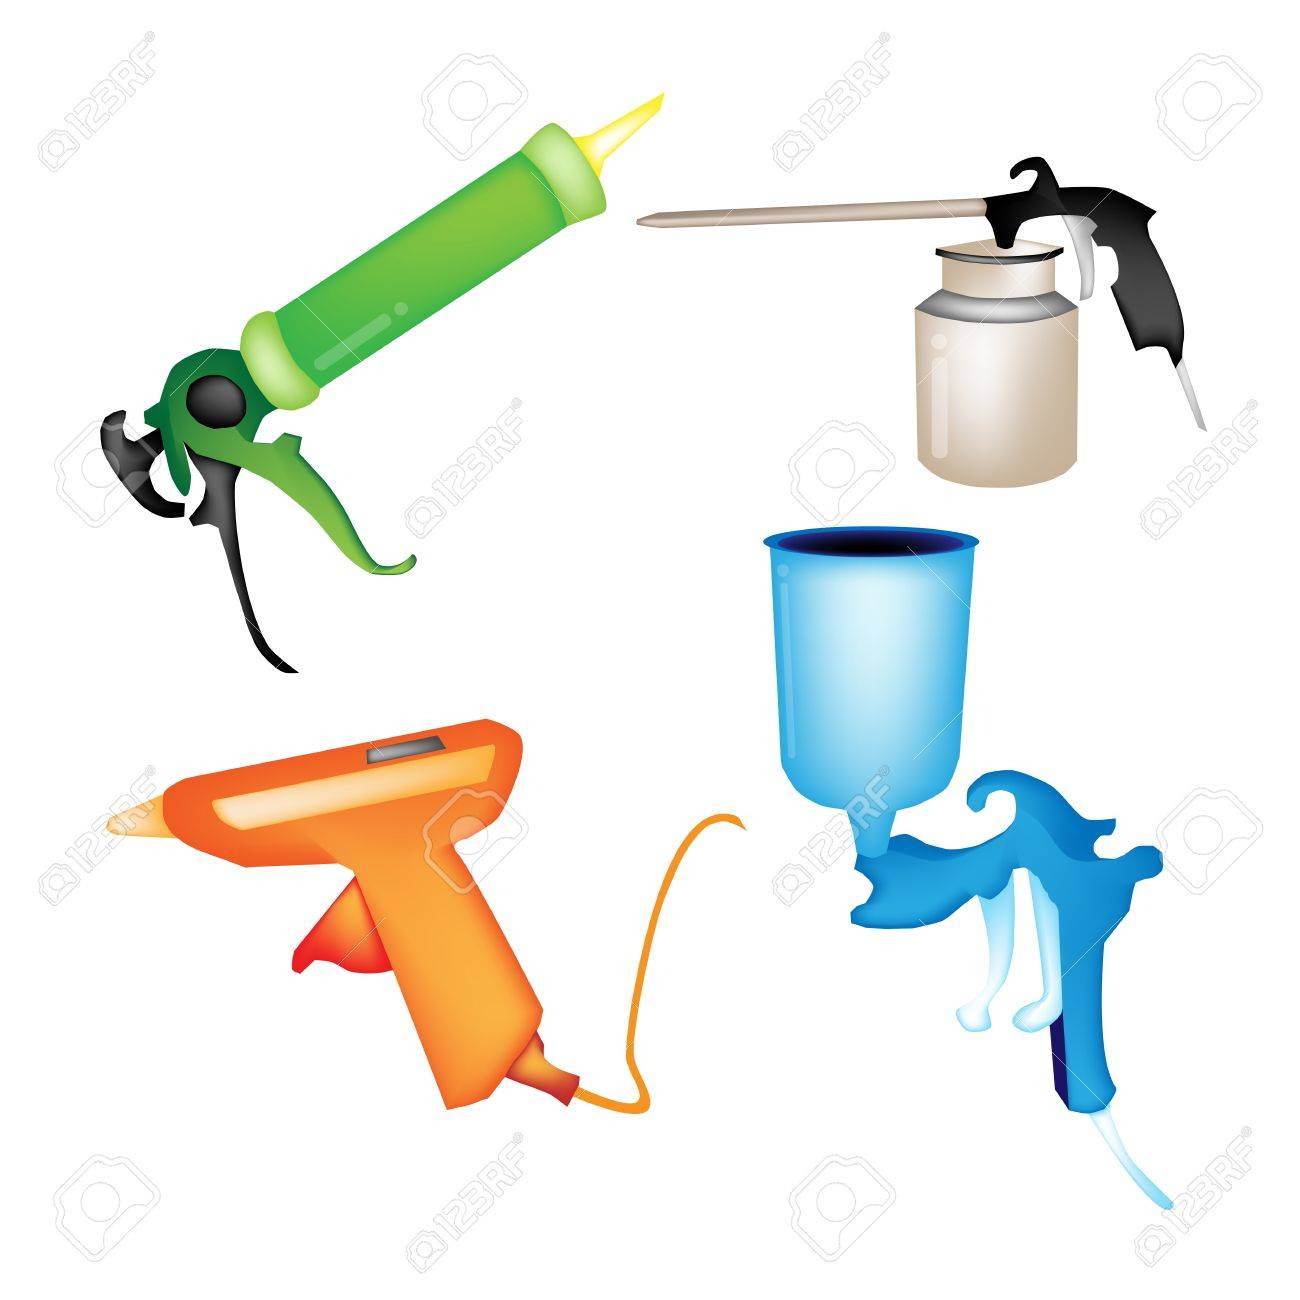 Illustration Collection of Hot Glue Gun, Caulking Gun, Airbrush Painting and Oil Can Isolated on White Background - 17935083